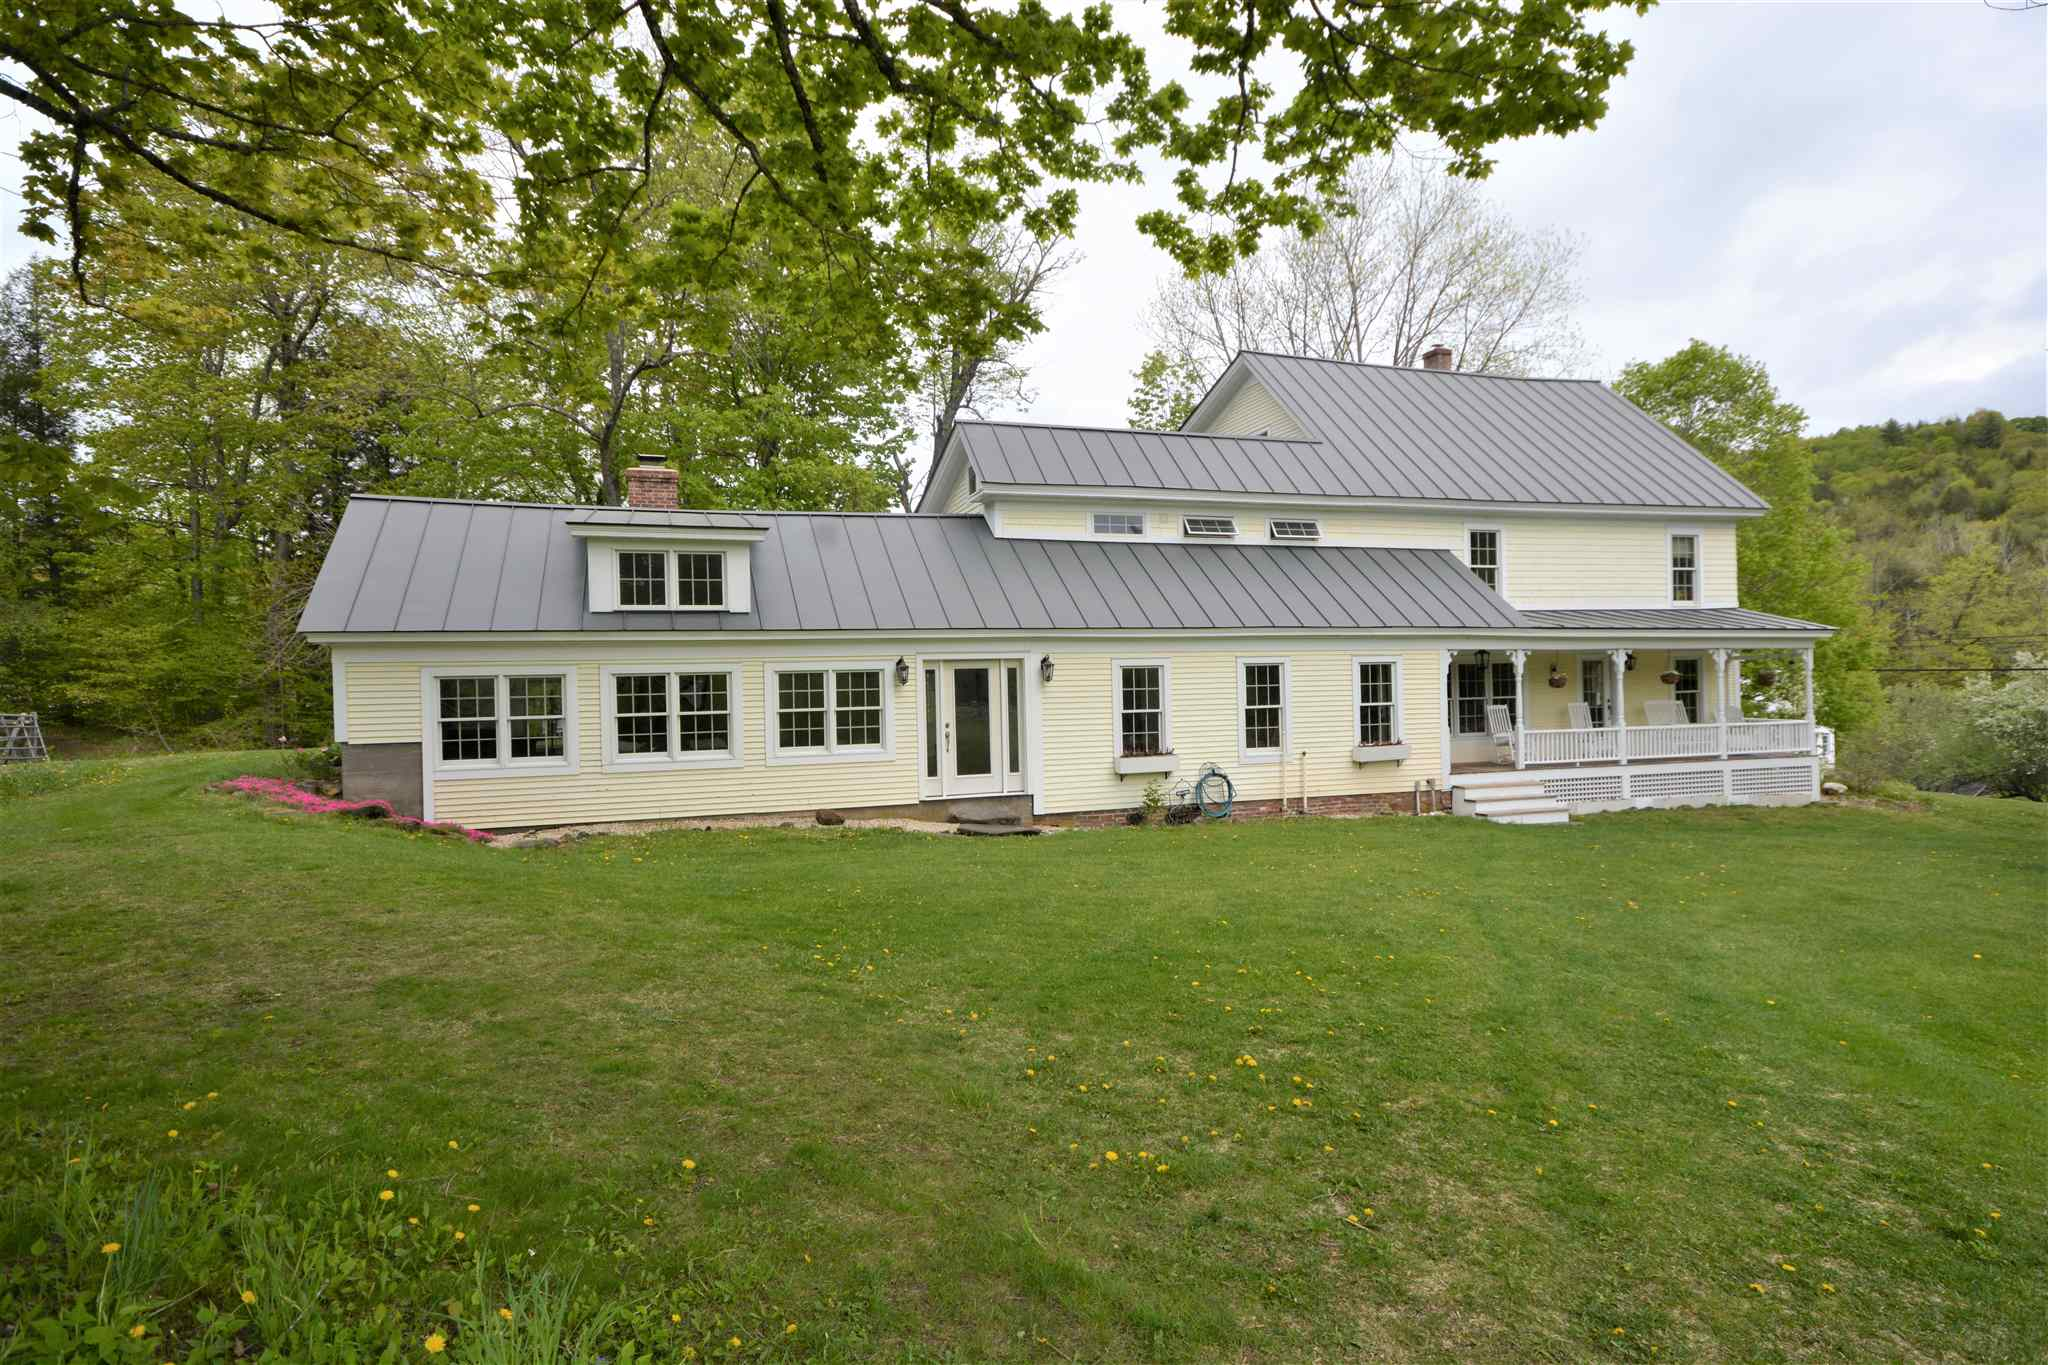 MLS 4807367: 2525 Barnard Road, Woodstock VT